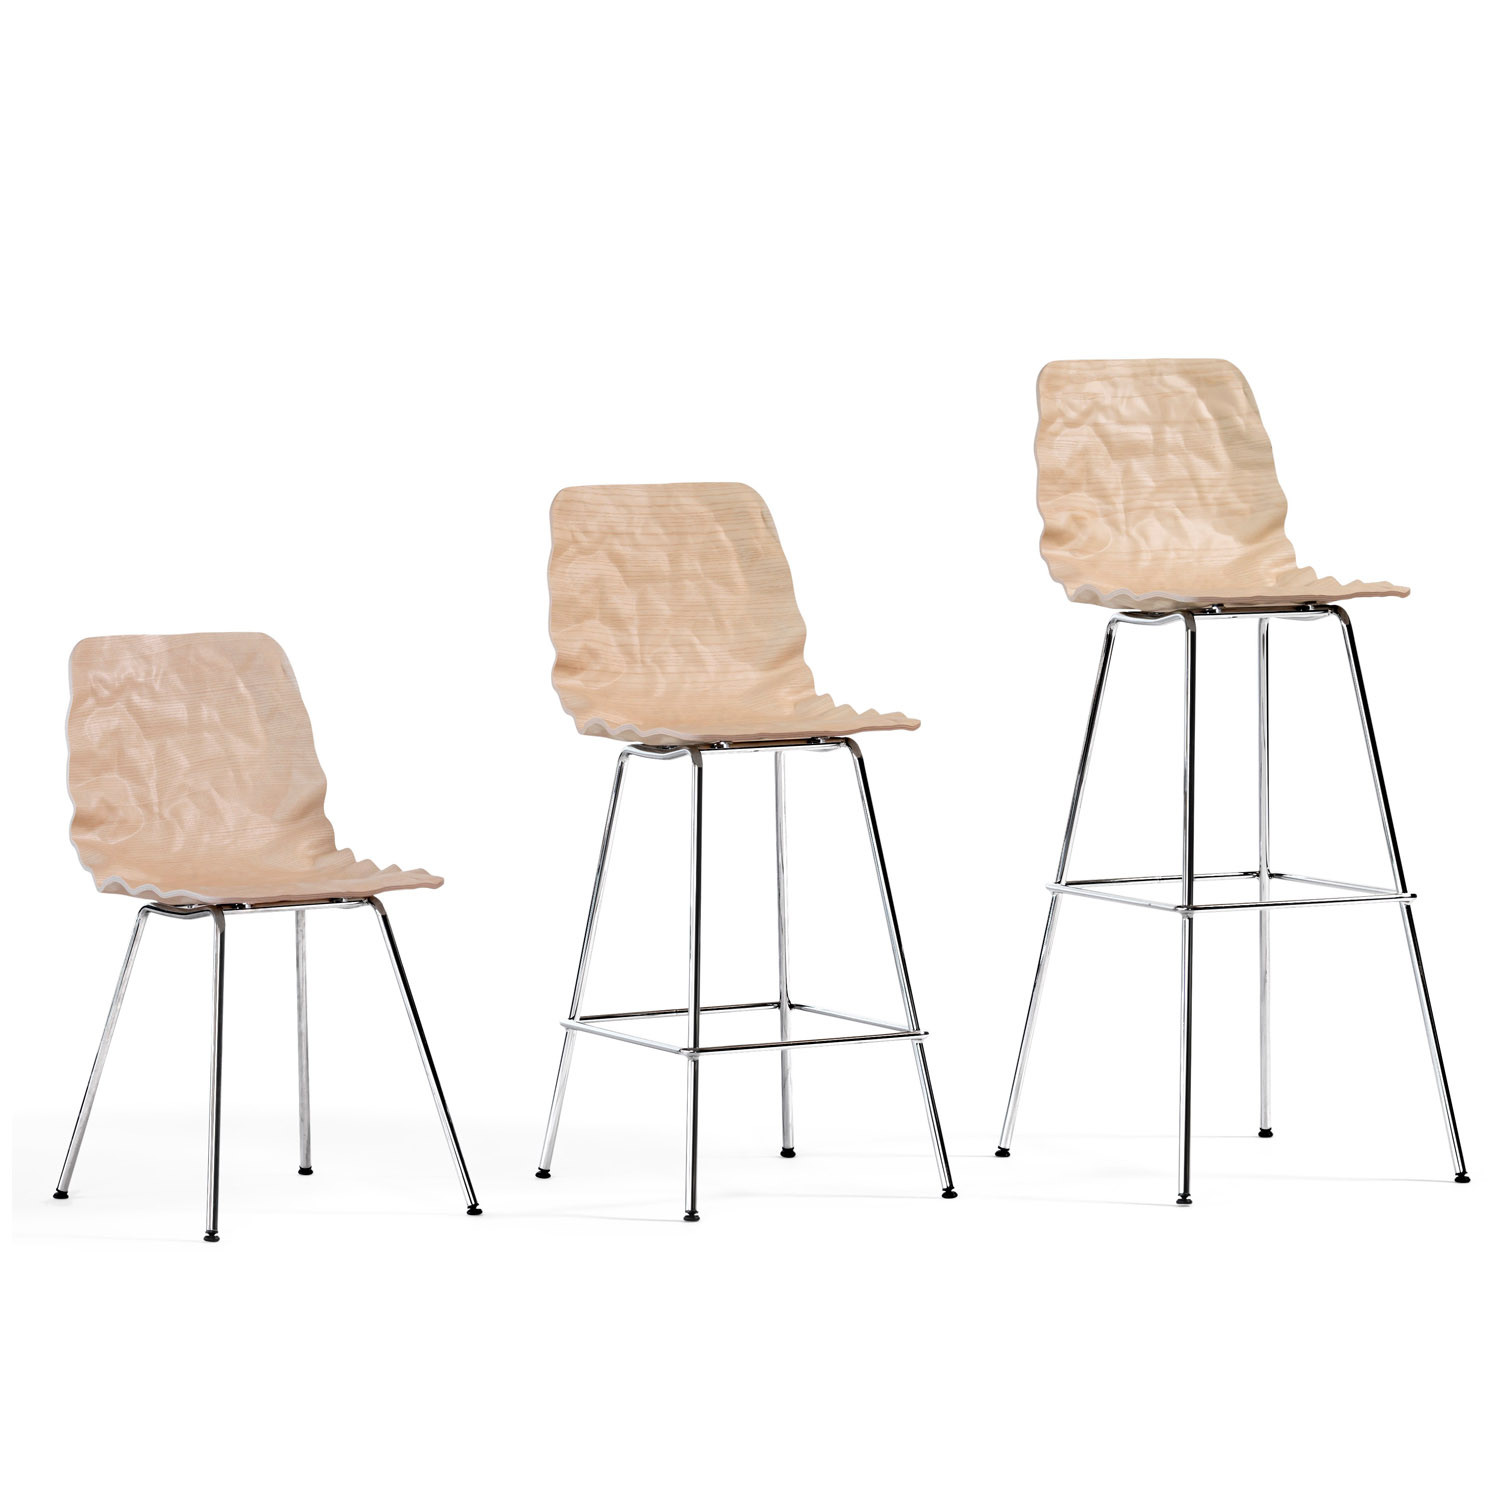 Dent Chair and Bar Stools from Bla Station